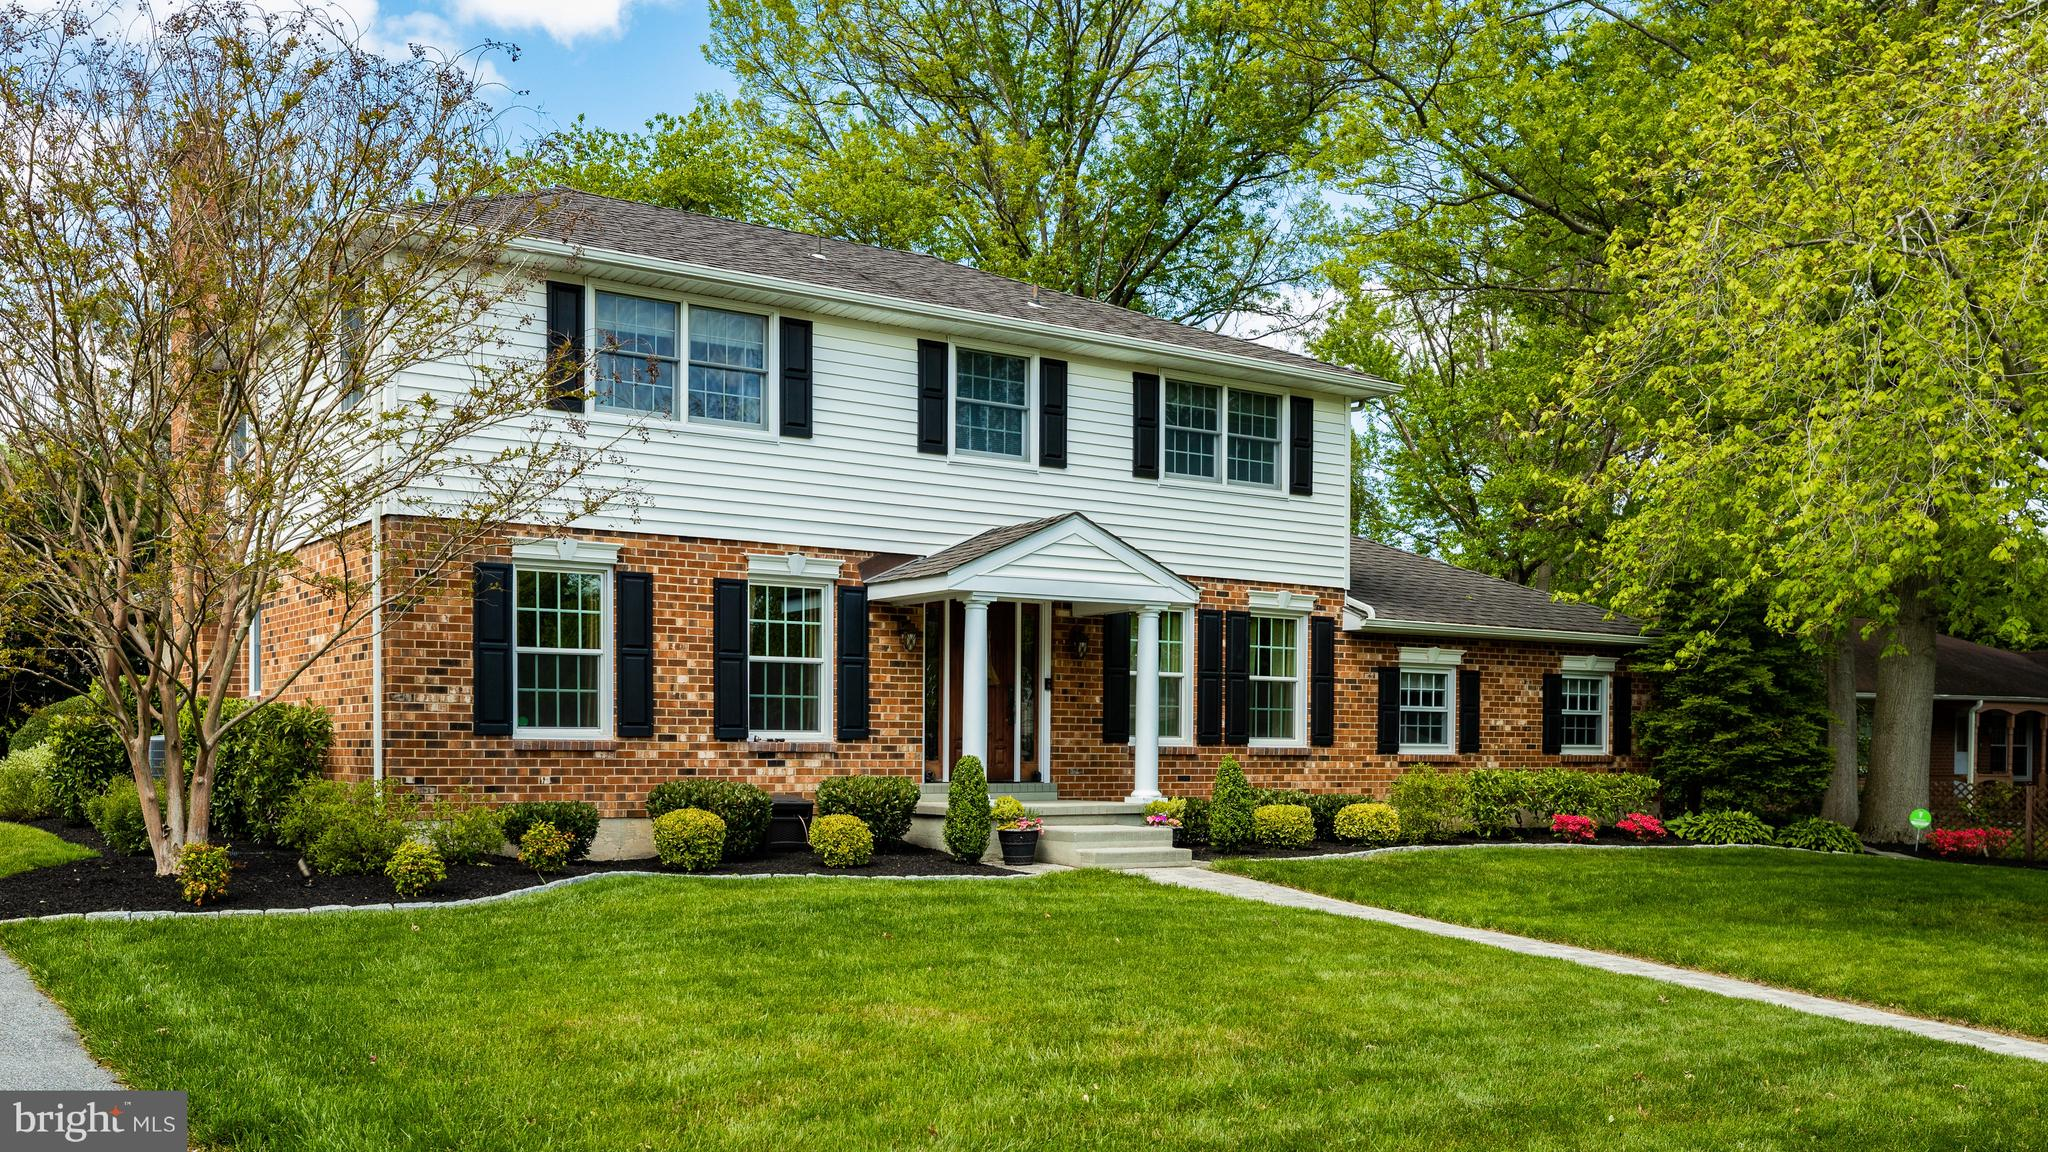 Traditional character melds with modern amenities in this beautifully appointed 4 bedroom, 2.1 bath colonial located in the sought after community of Talleybrook.  The home owners have made numerous improvements to this property including windows, air conditioning,custom millwork, door hardware, landscaping, stamped concrete patio complete with spa hot tub and new driveway.  Inside the color palette is neutral, solid oak hardwood flooring gleams, the gas fireplace is inviting, and recessed lighting provides a warm ambience.  The vaulted ceiling in the bonus room/sunroom has skylights and gorgeous windows that create a bright and spacious vibe.  With an open concept living room/family room/sunroom addition this is the perfect home for entertaining.  The kitchen is a chef's dream with Thermadore gas range, Miele vent  hood and Bosch dishwasher and don't forget the under-cabinet lighting!  Relax outside this Spring & Summer in your private backyard oasis complete with Trex deck, patio and luxurious hot tub.  When you're ready to retire you'll find 4 generously sized bedrooms complete with California closet systems.  The master bedroom offers his and hers closets and a lovely appointed private master bath.  The hall bath and main level powder room have been completely updated.  Main level laundry is also a wonderful feature of this home.  Looking for extra storage; there is a large unfinished basement and partially floored attic.  Schedule your appointment today!